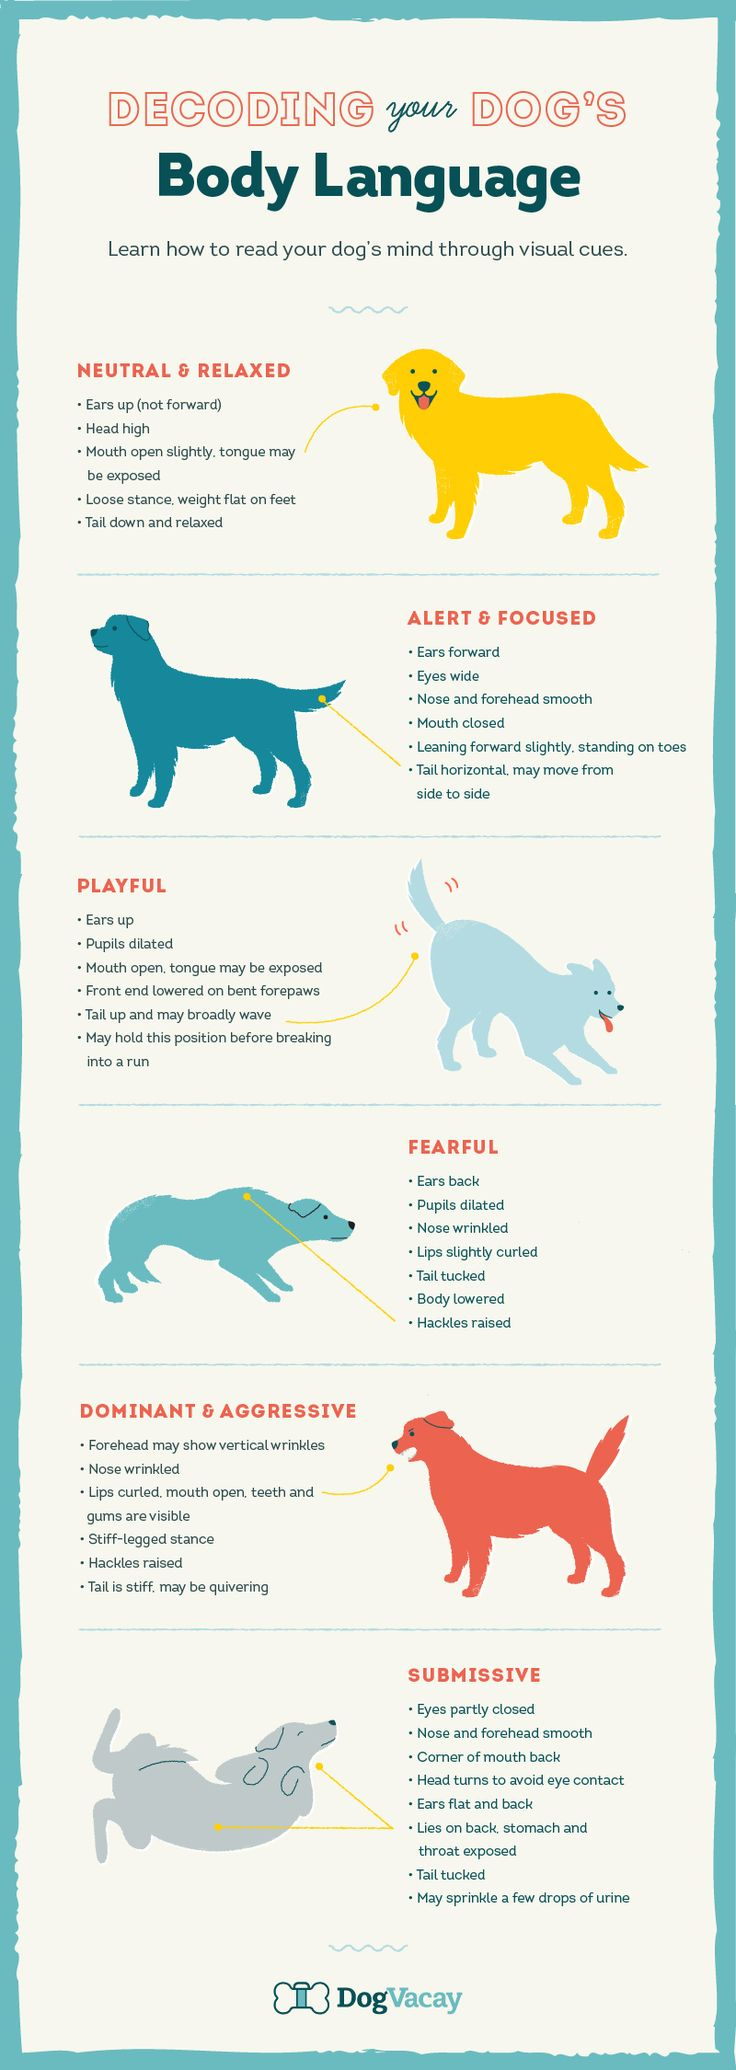 598 Best Puppy Love Images On Pinterest Doggies Pets And Cat Dogmaster Trainers By Products Electric Fence Fencing An Illustrated Guide To Dog Behavior